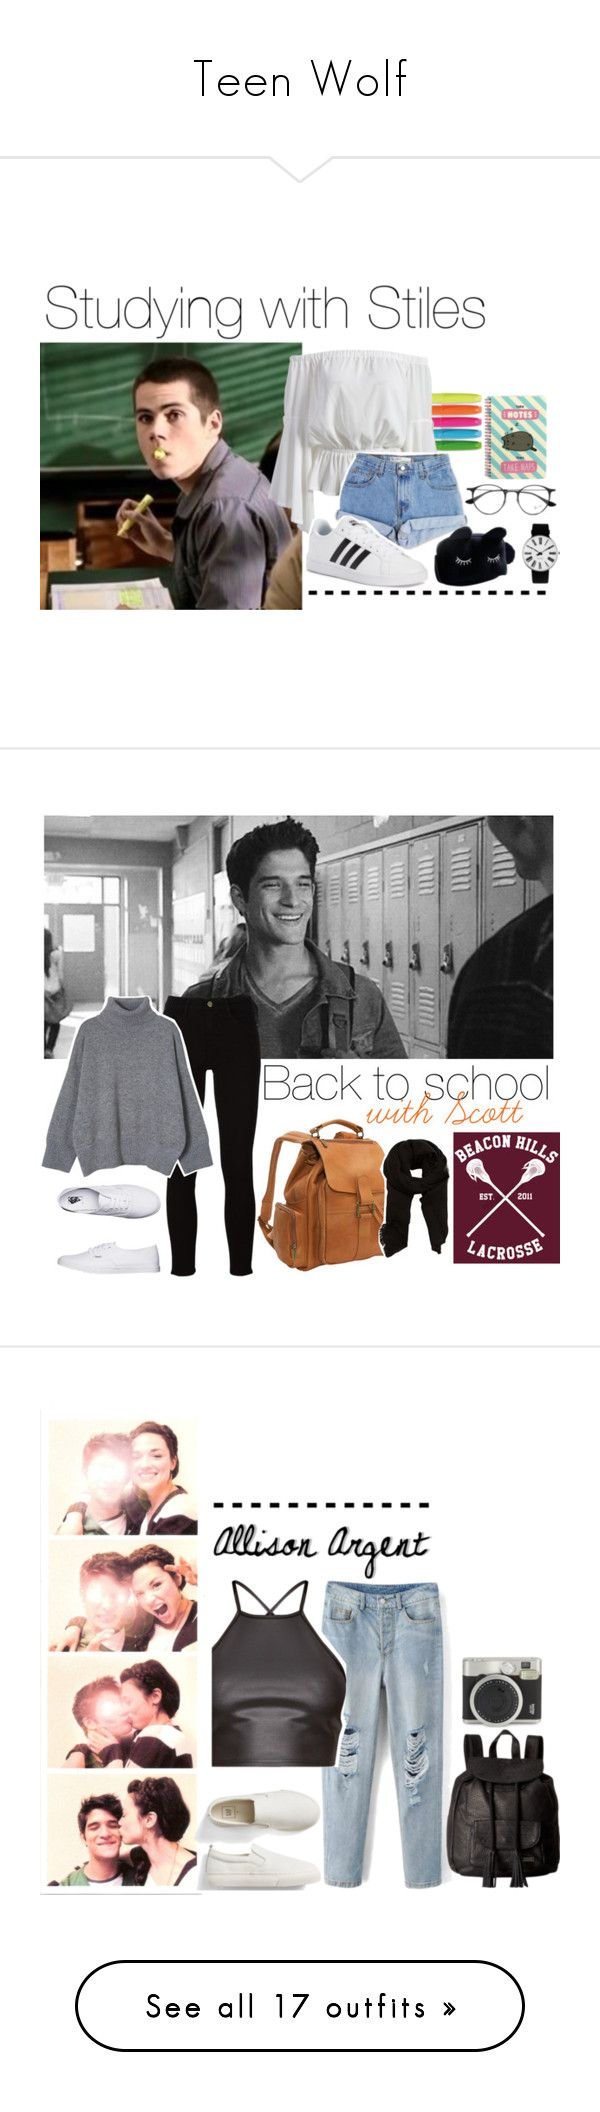 """Teen Wolf"" by pikenapayne ❤ liked on Polyvore featuring Pusheen, Levi's, adidas, Ray-Ban, Rosendahl, Frame, Vans, Le Donne, MANGO and Gap"